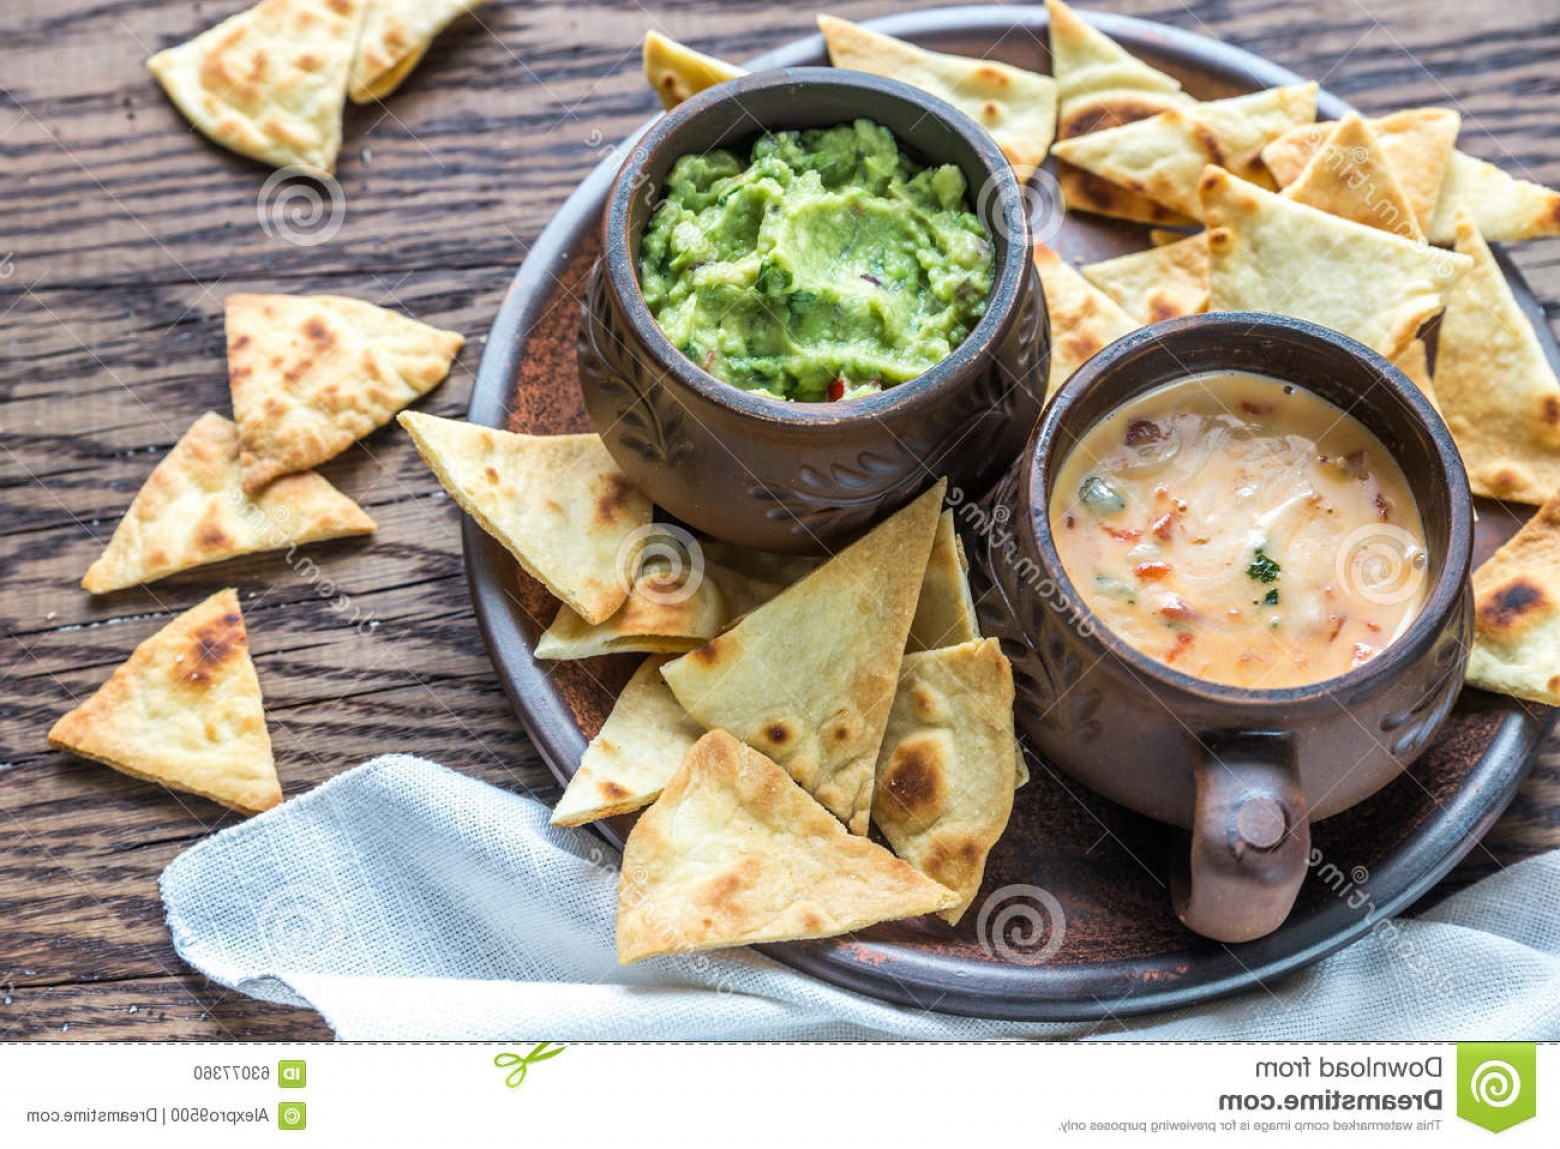 Chips Queso Vector: Stock Photo Bowls Guacamole Queso Tortilla Chips Wooden Table Image